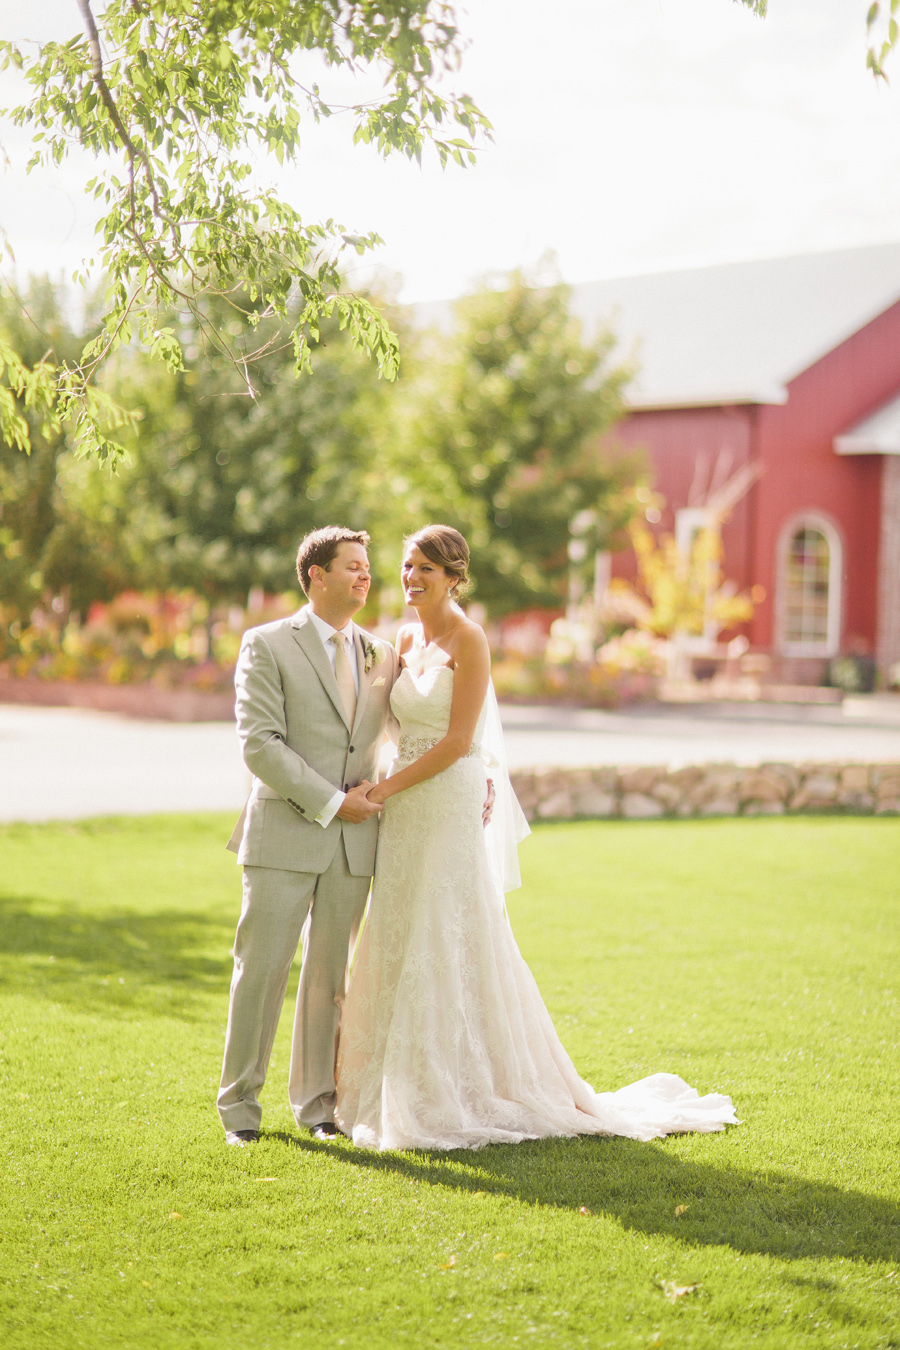 Emily_Todd_LarkspurColorado_Wedding_6.jpg